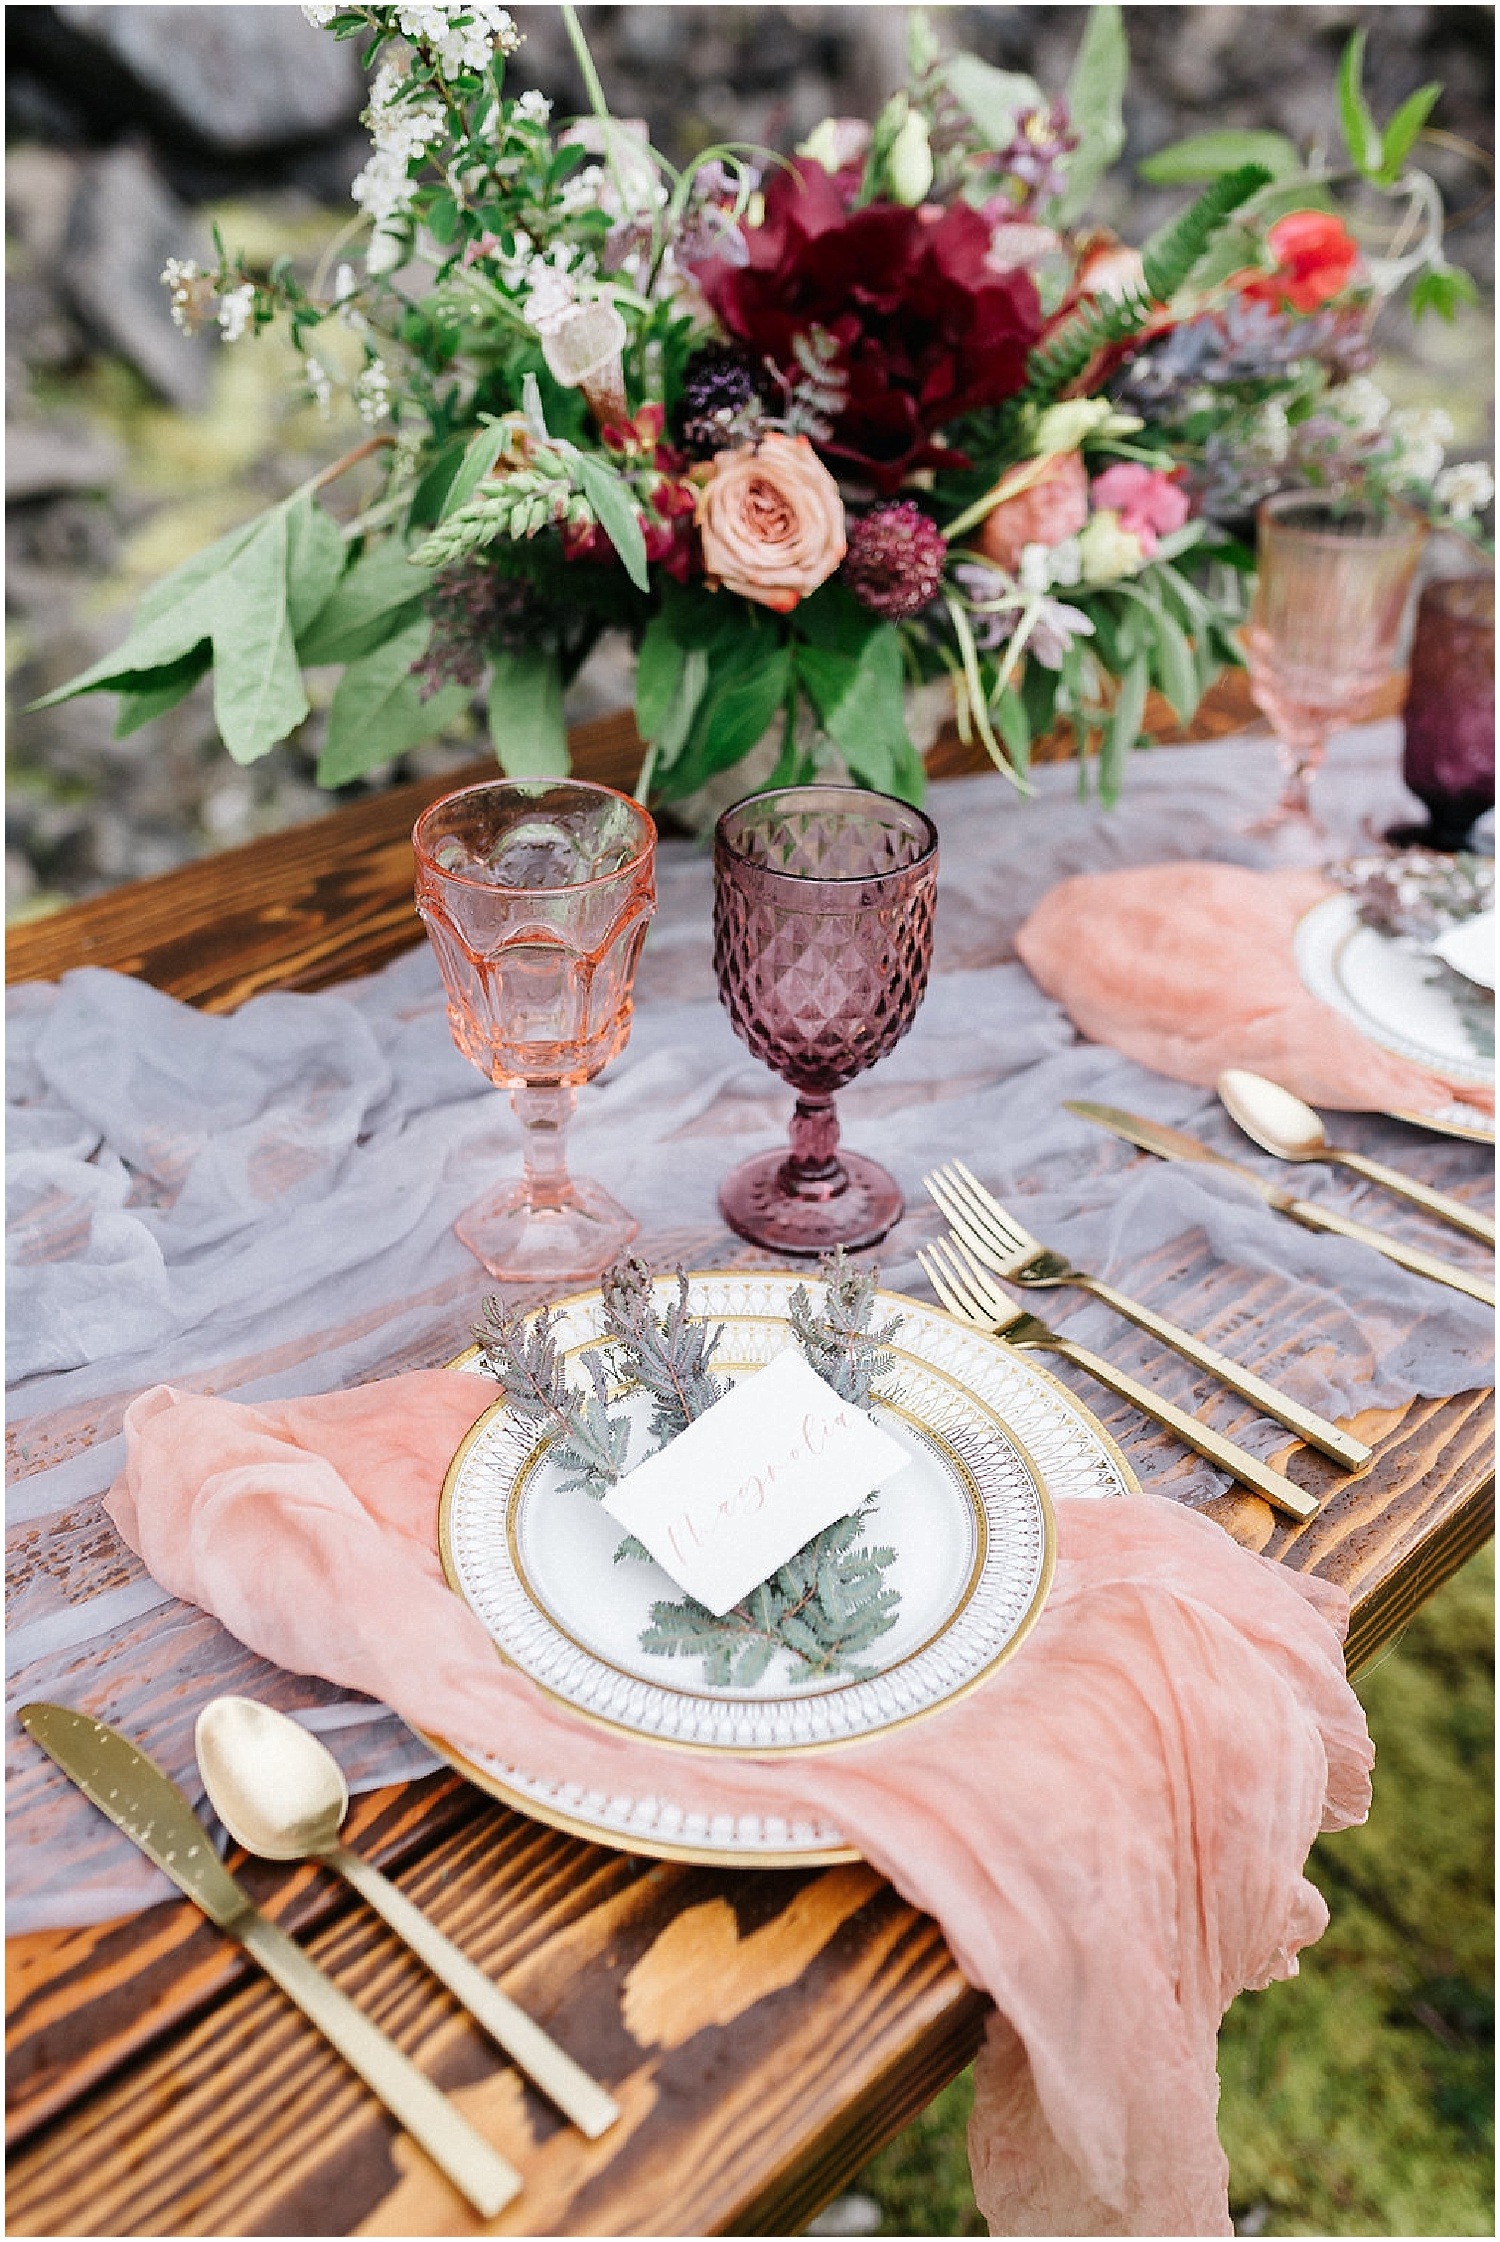 place setting with centerpiece